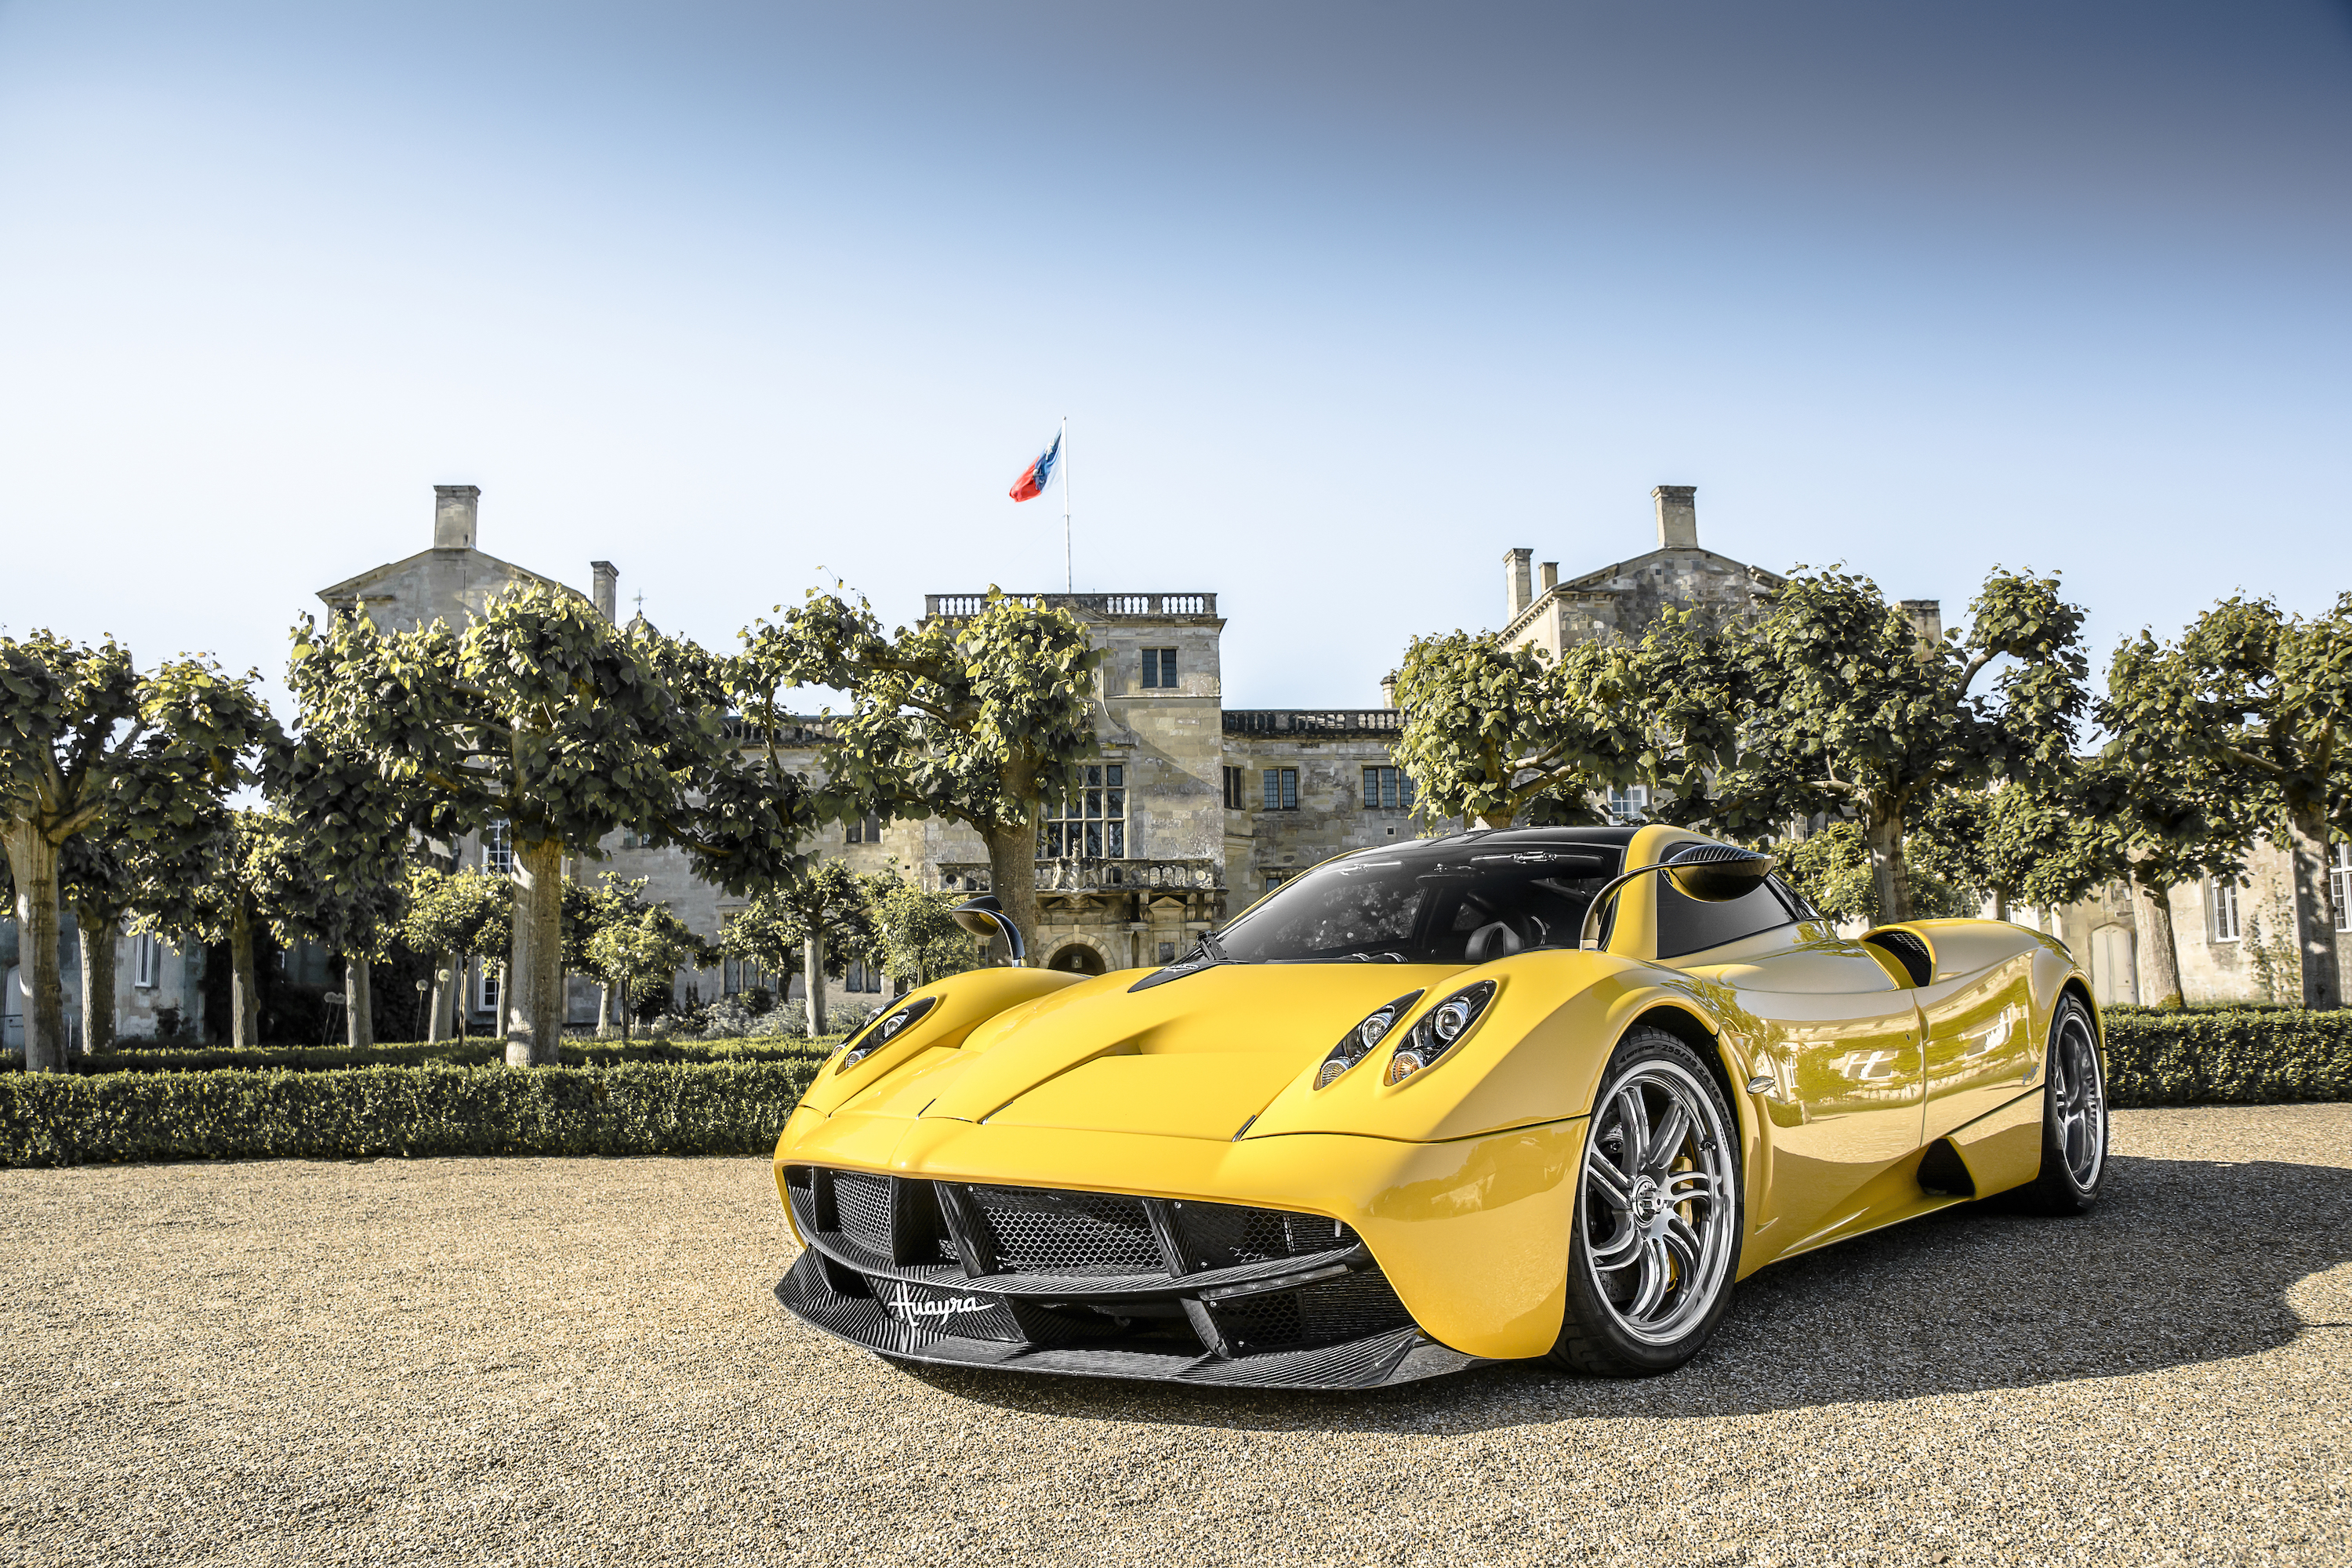 Final Car List Revealed for City Concours